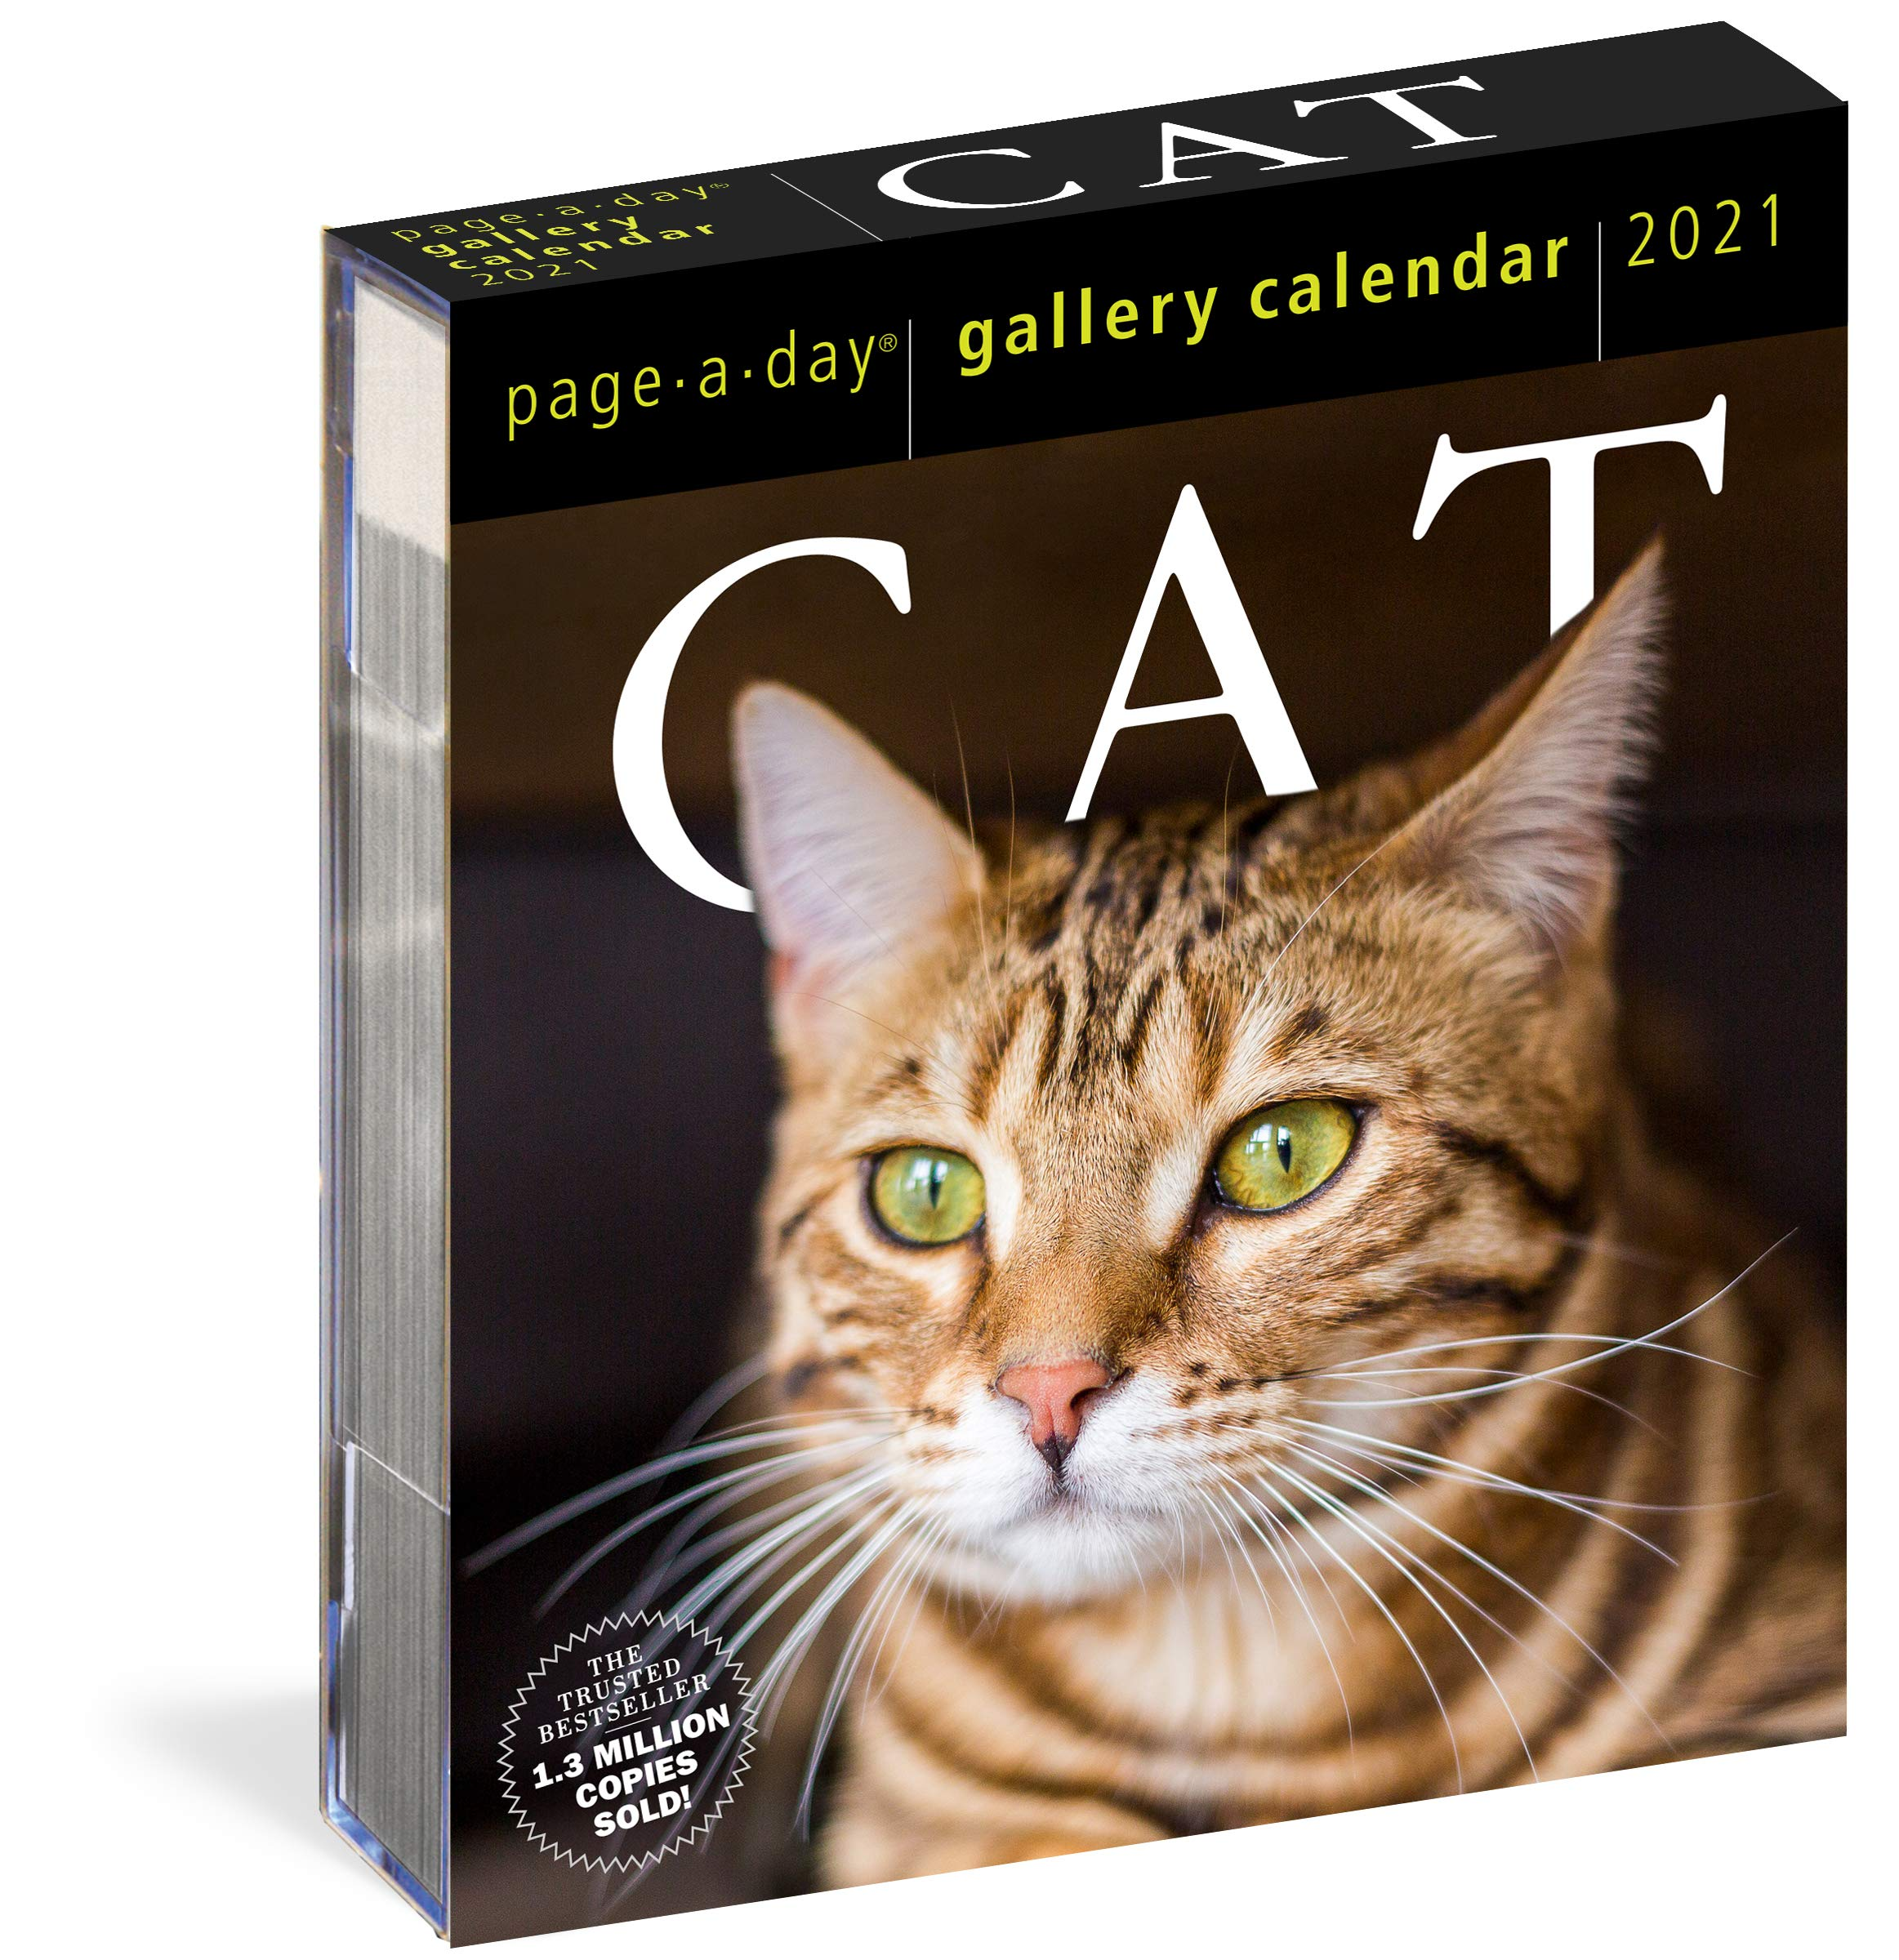 Amazon.com: Cat Page A Day Gallery Calendar 2021 (9781523508921